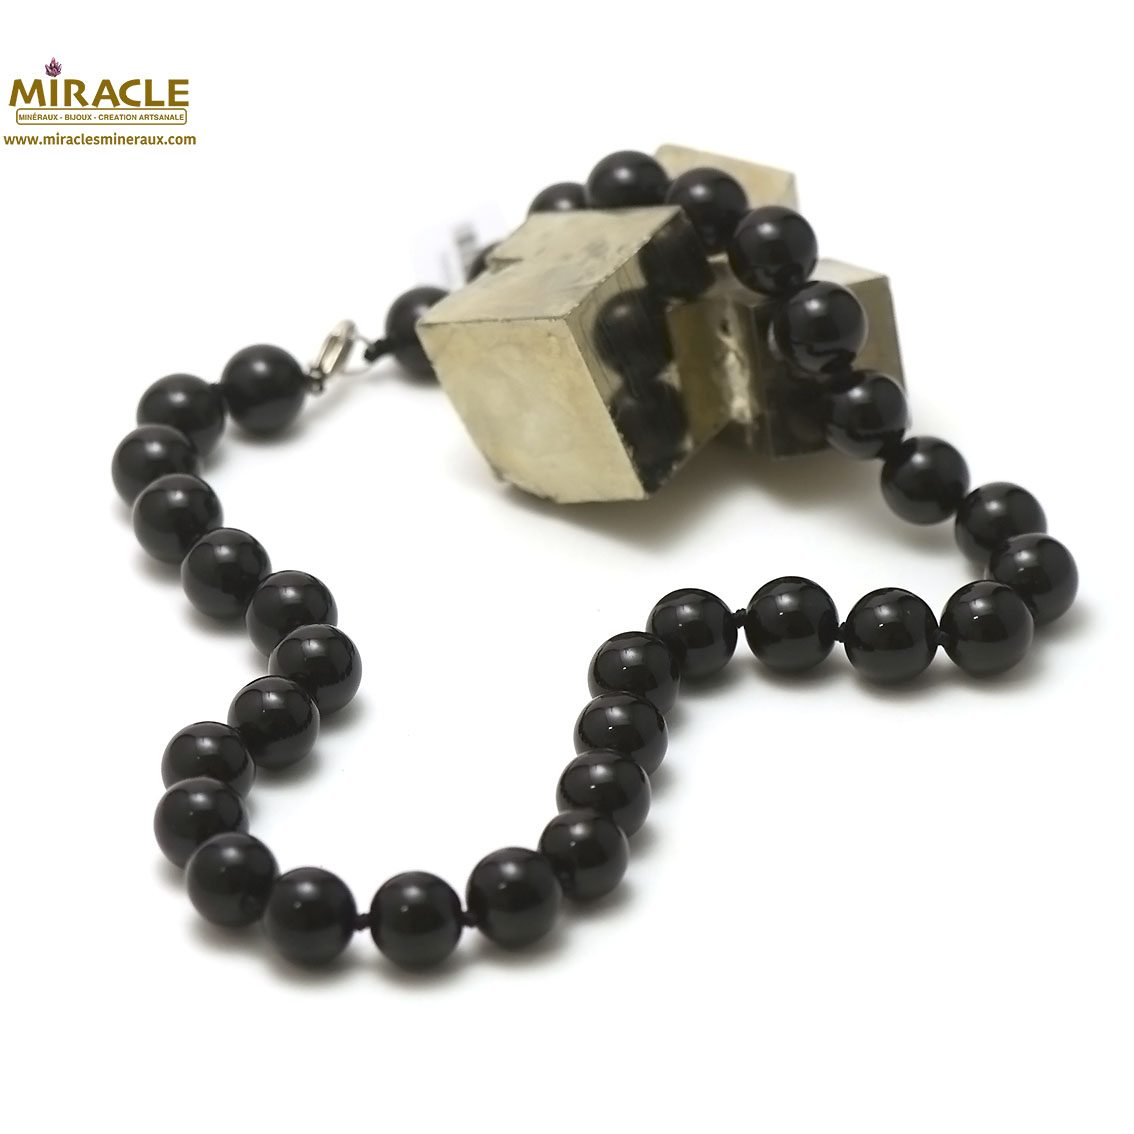 Collier onyx, perle ronde 12 mm